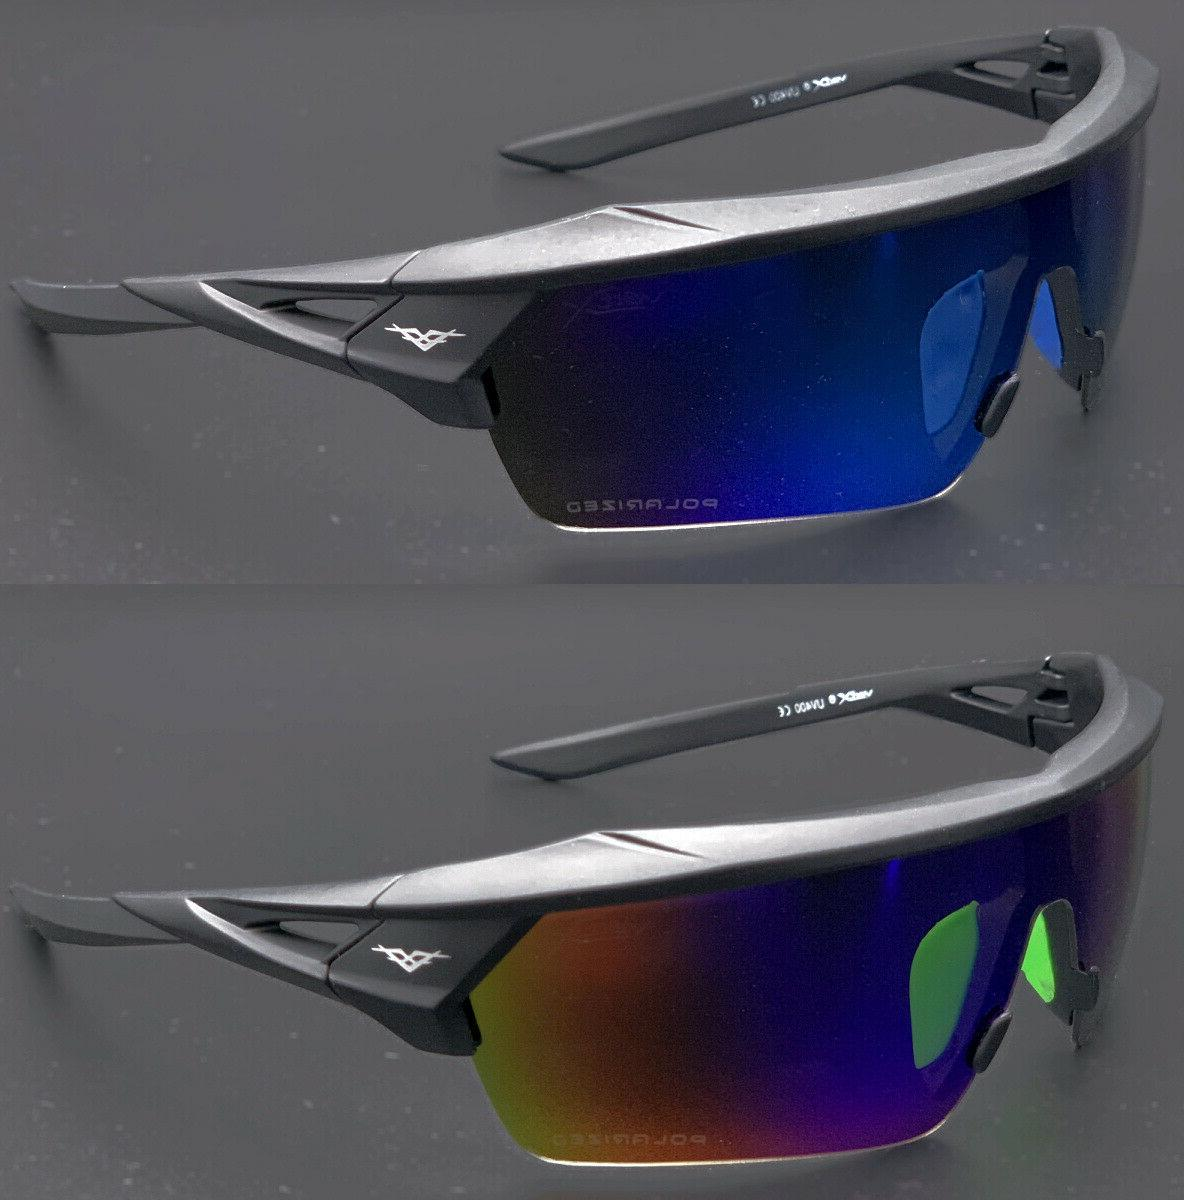 VERTX Premium Sunglasses Around 5118